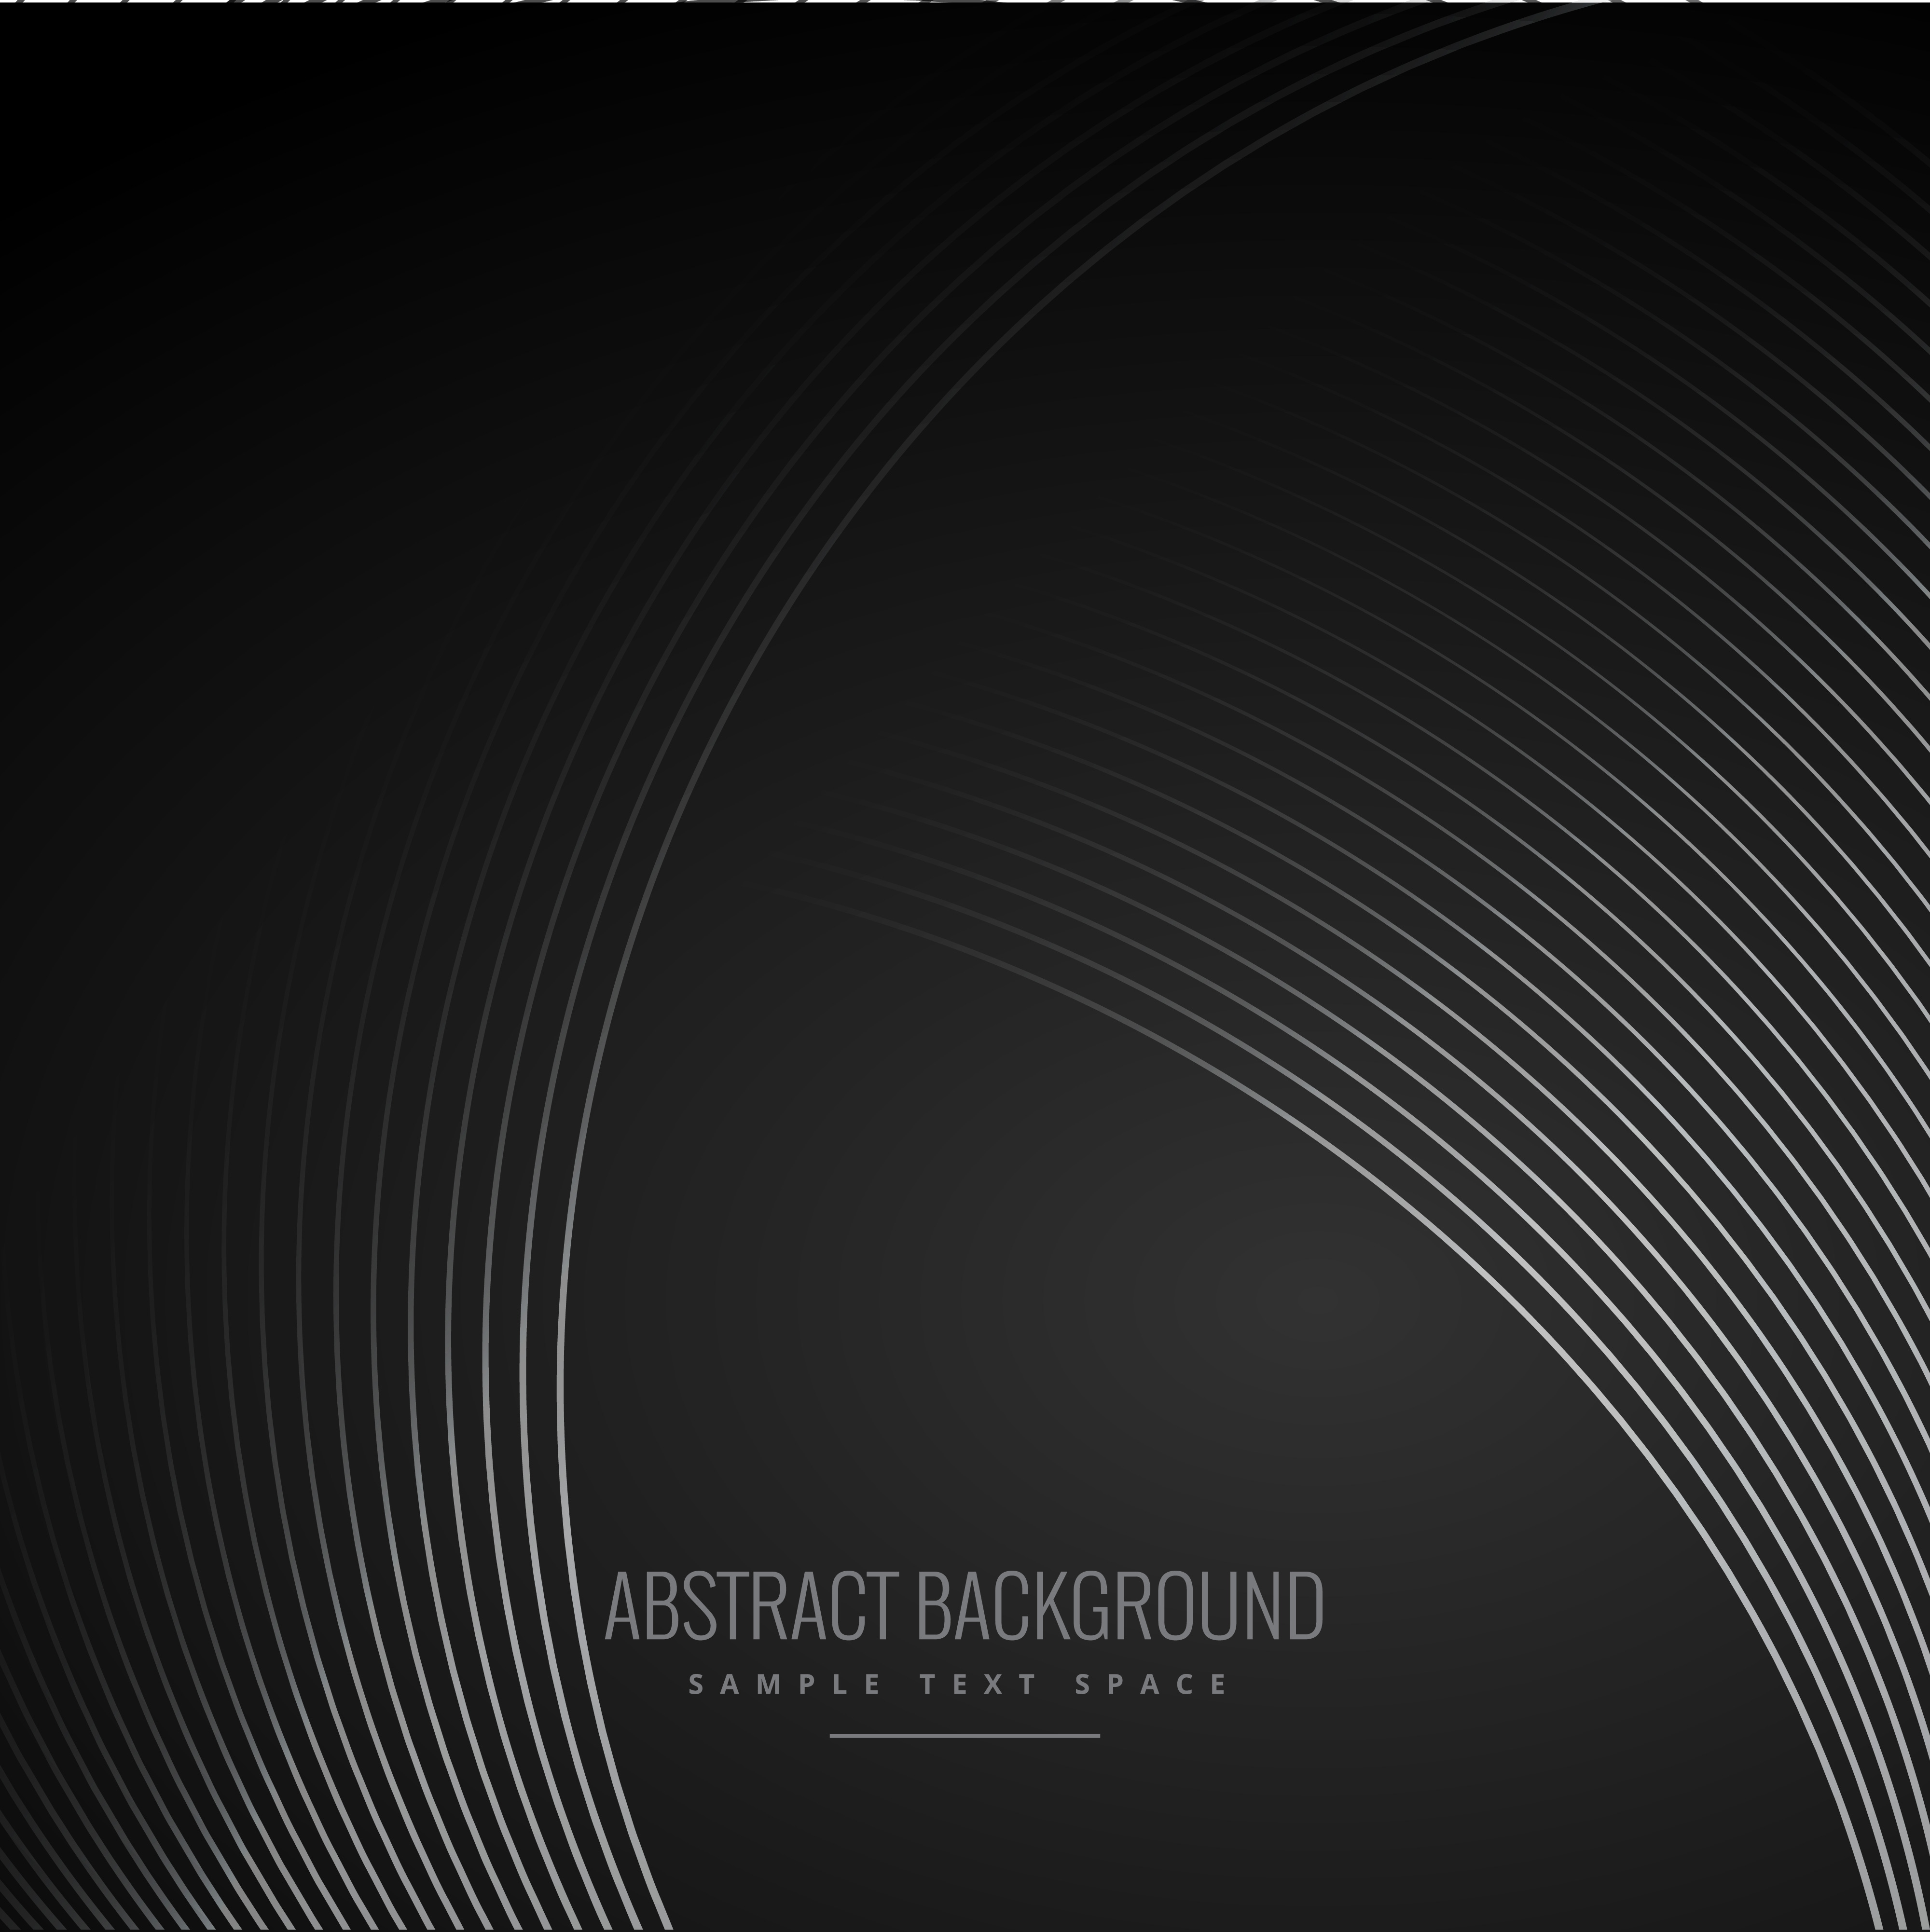 Drawing Smooth Curved Lines In Photo : Smooth curve lines in dark black background download